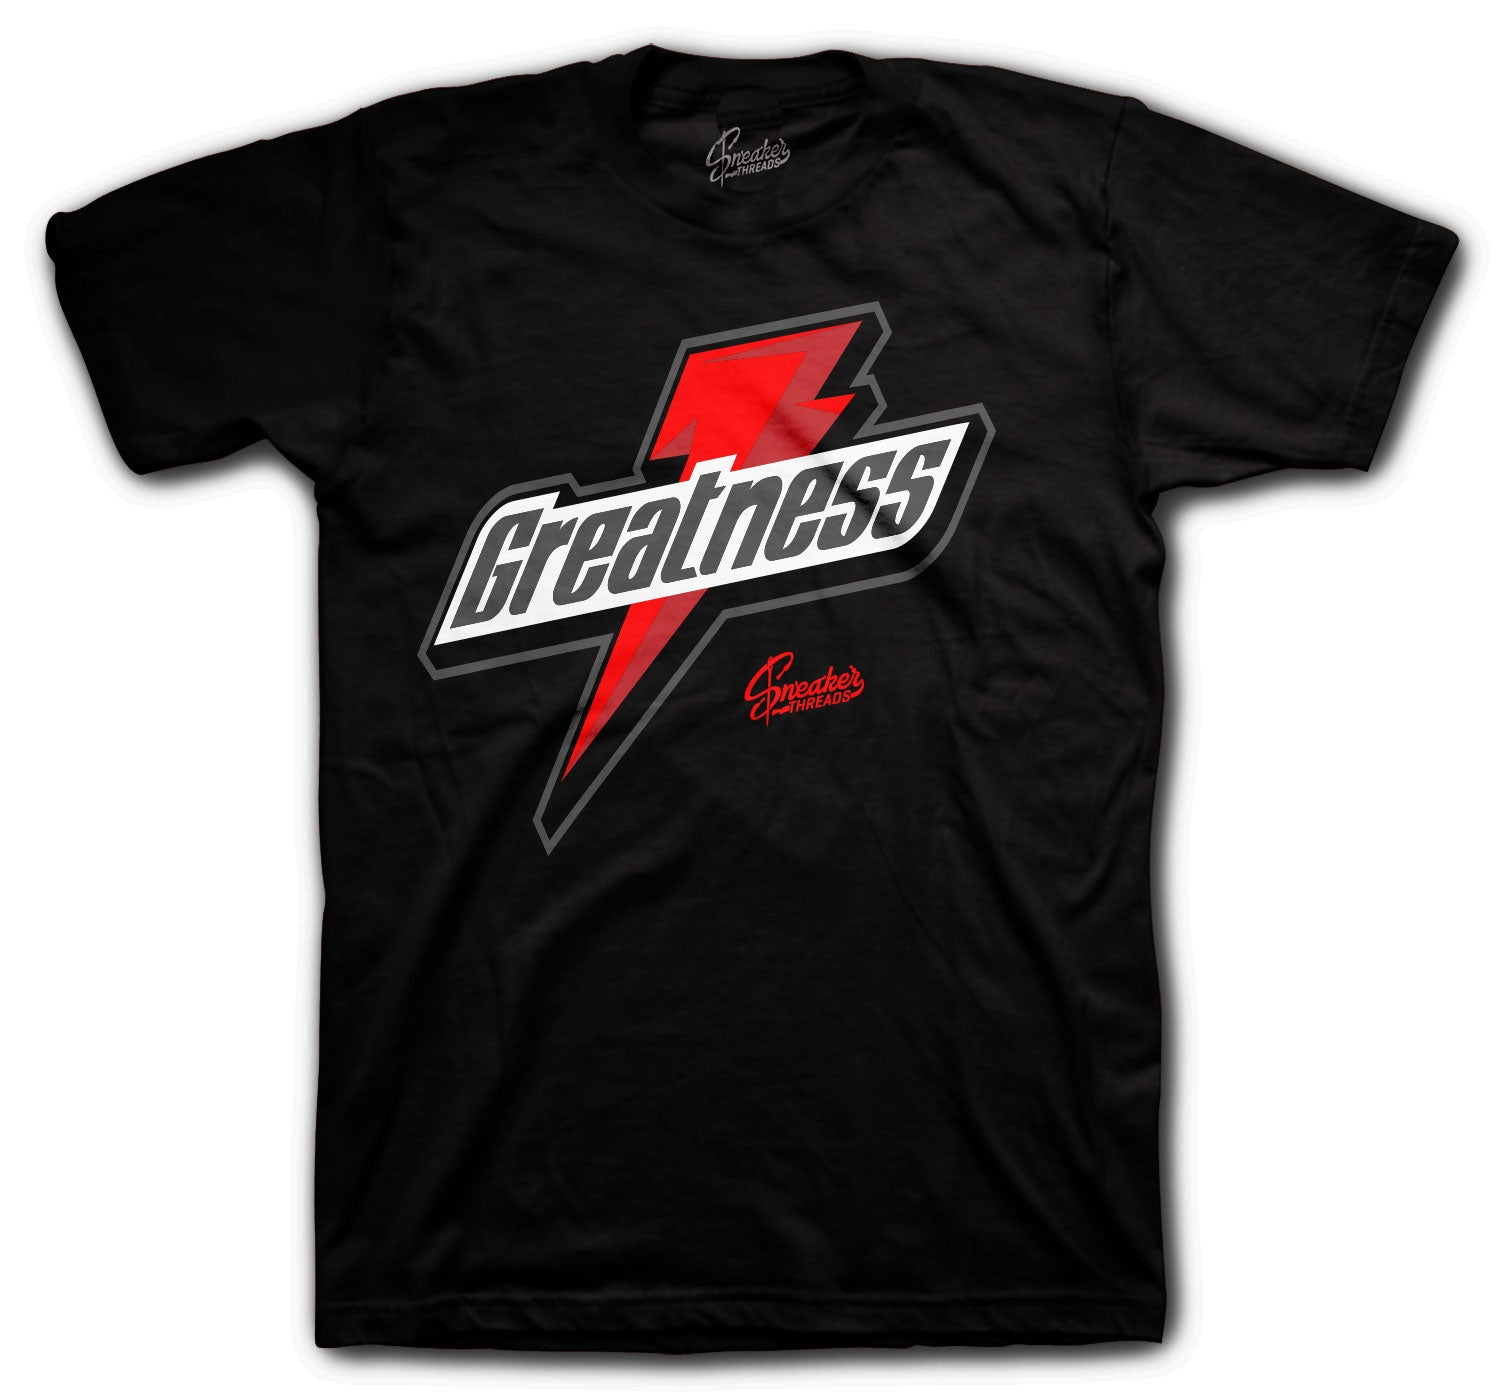 Yeezy 350 Bred Greatness Shirt